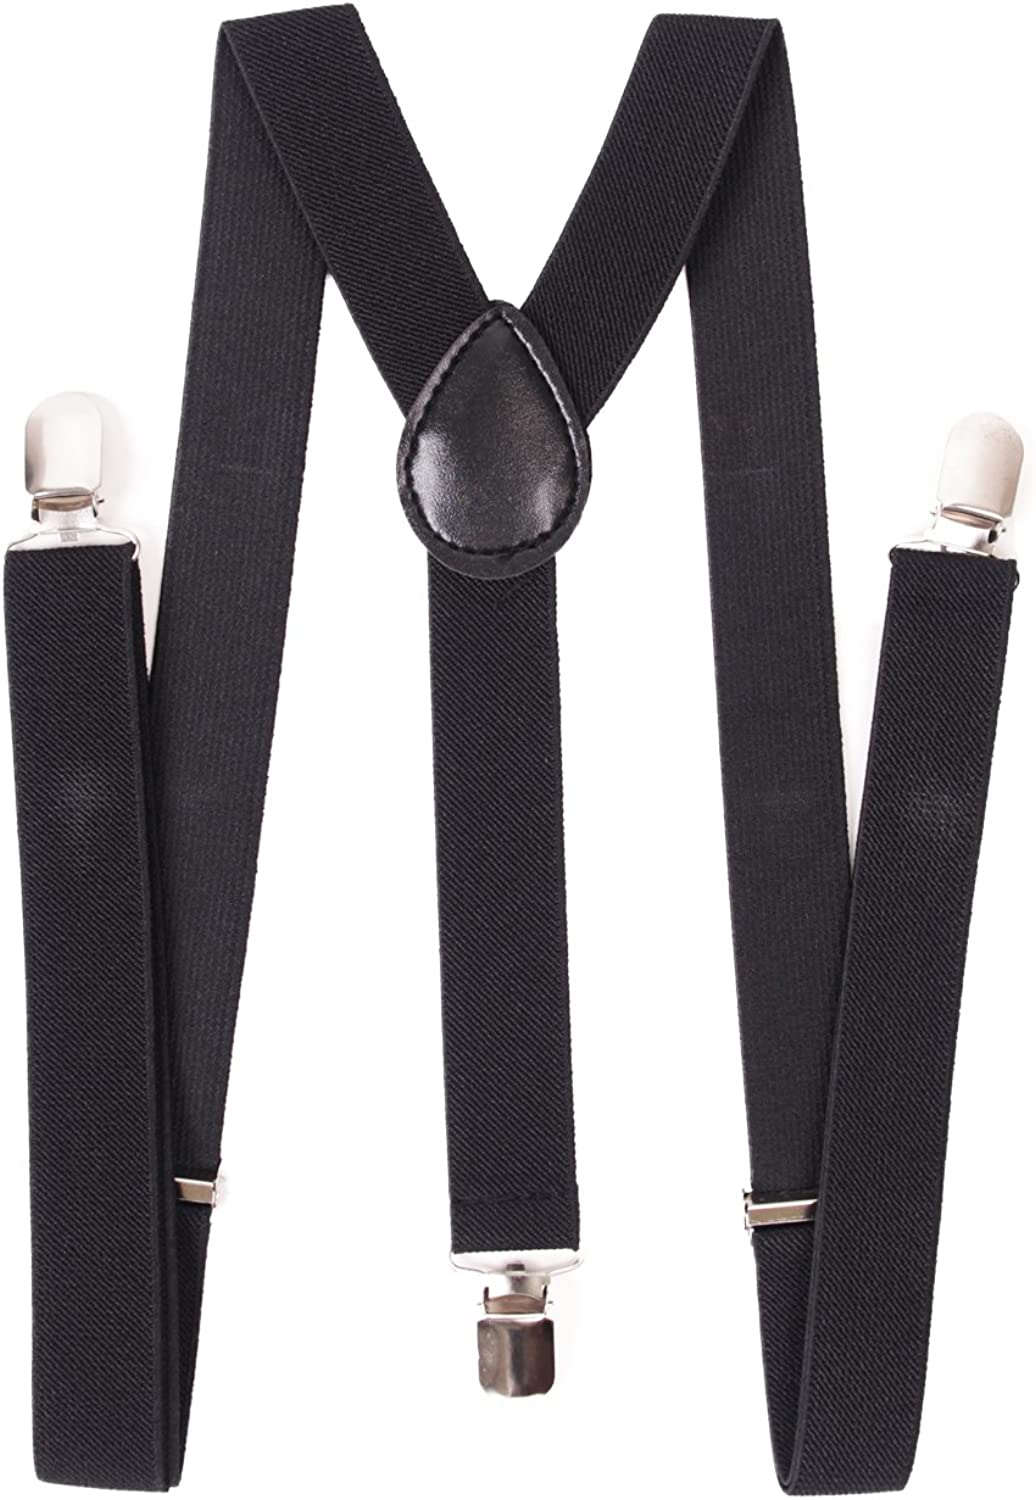 AJ Accessories Youth Boys Solid Nylon Suspenders Bla Adjustable Spasm price Popular shop is the lowest price challenge